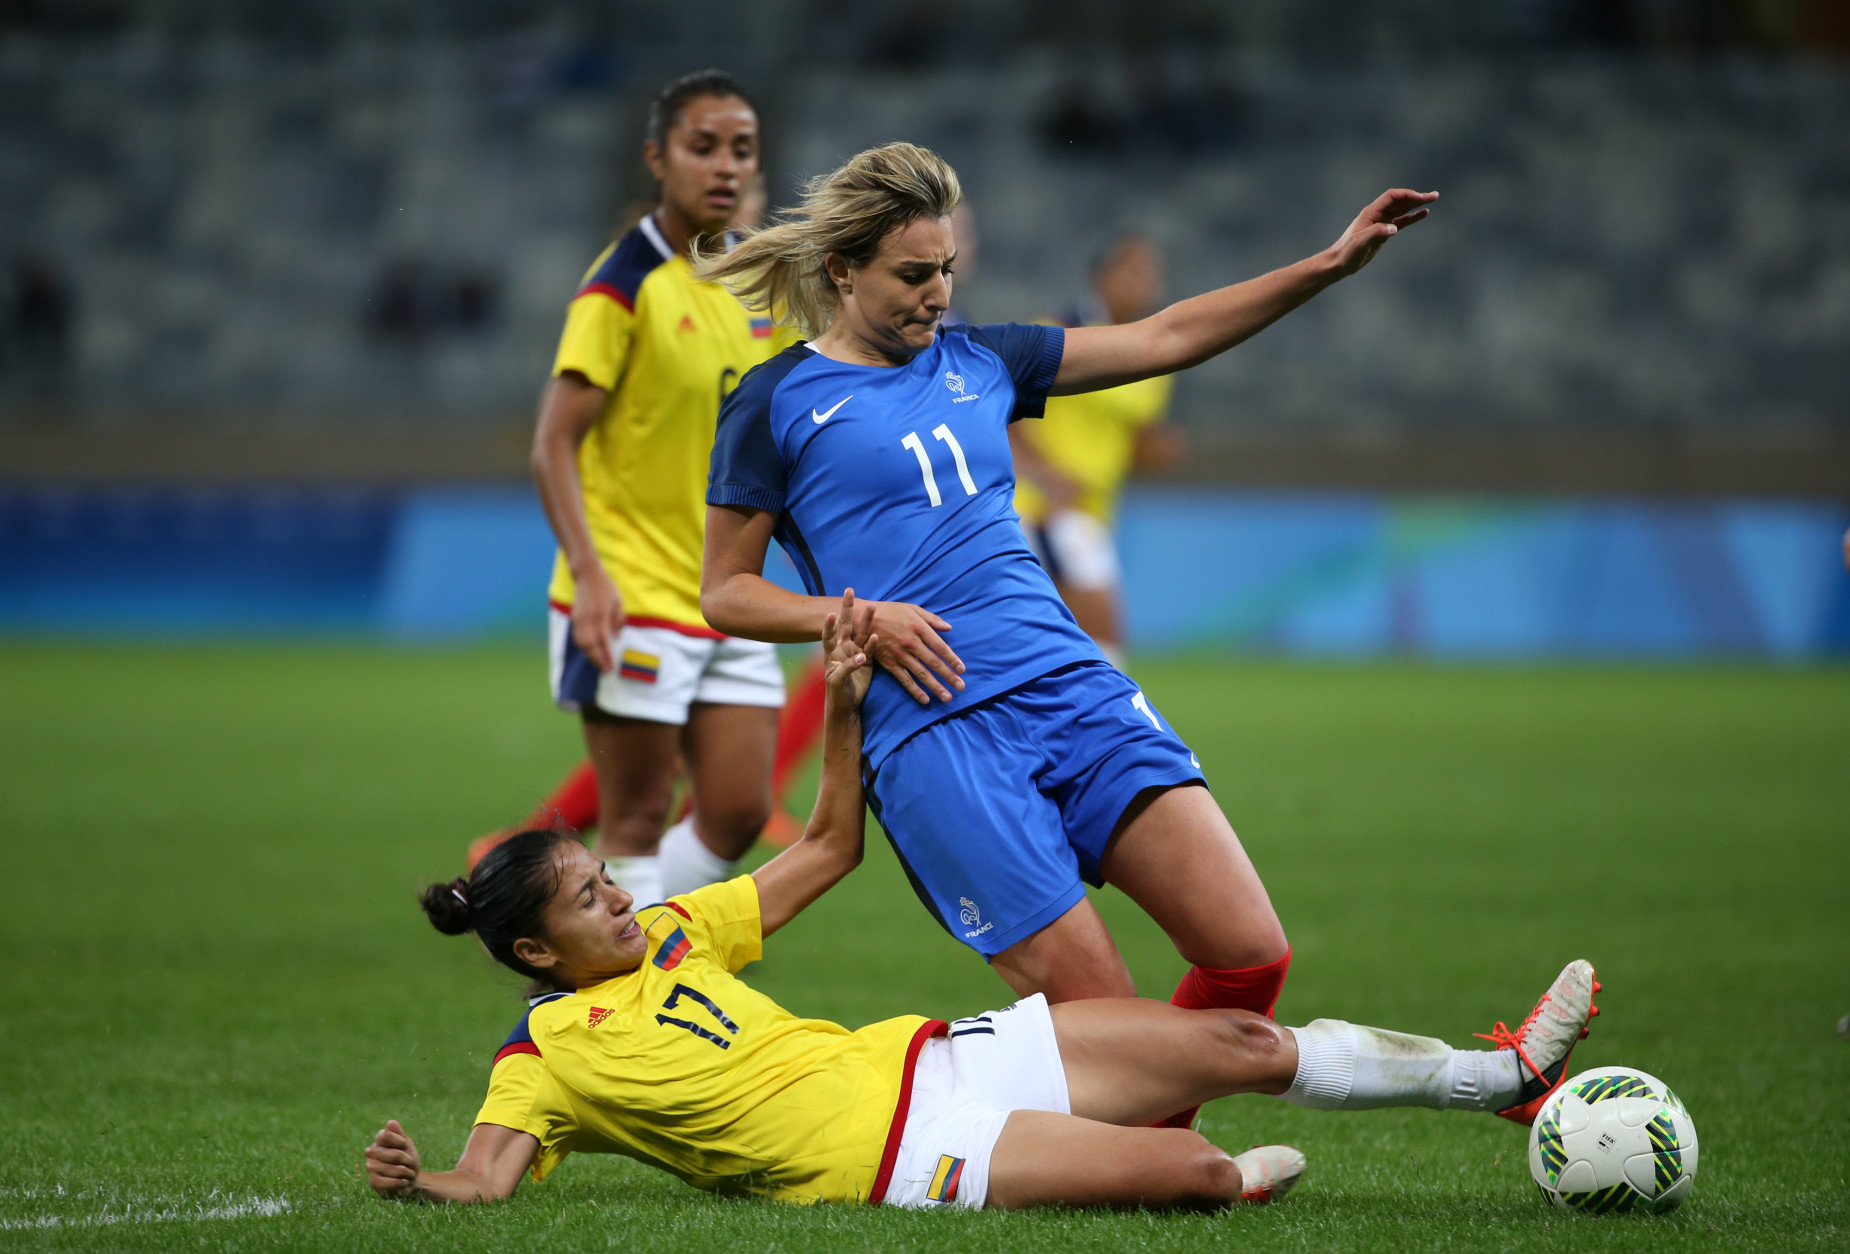 France's Claire Lavogez, top, fights for the ball with Colombia's Carolina Arias during the Women's Olympic Football Tournament at the Mineirao stadium in Belo Horizonte, Brazil, Wednesday, Aug. 3, 2016. France won 4-0. (AP Photo/Eugenio Savio)